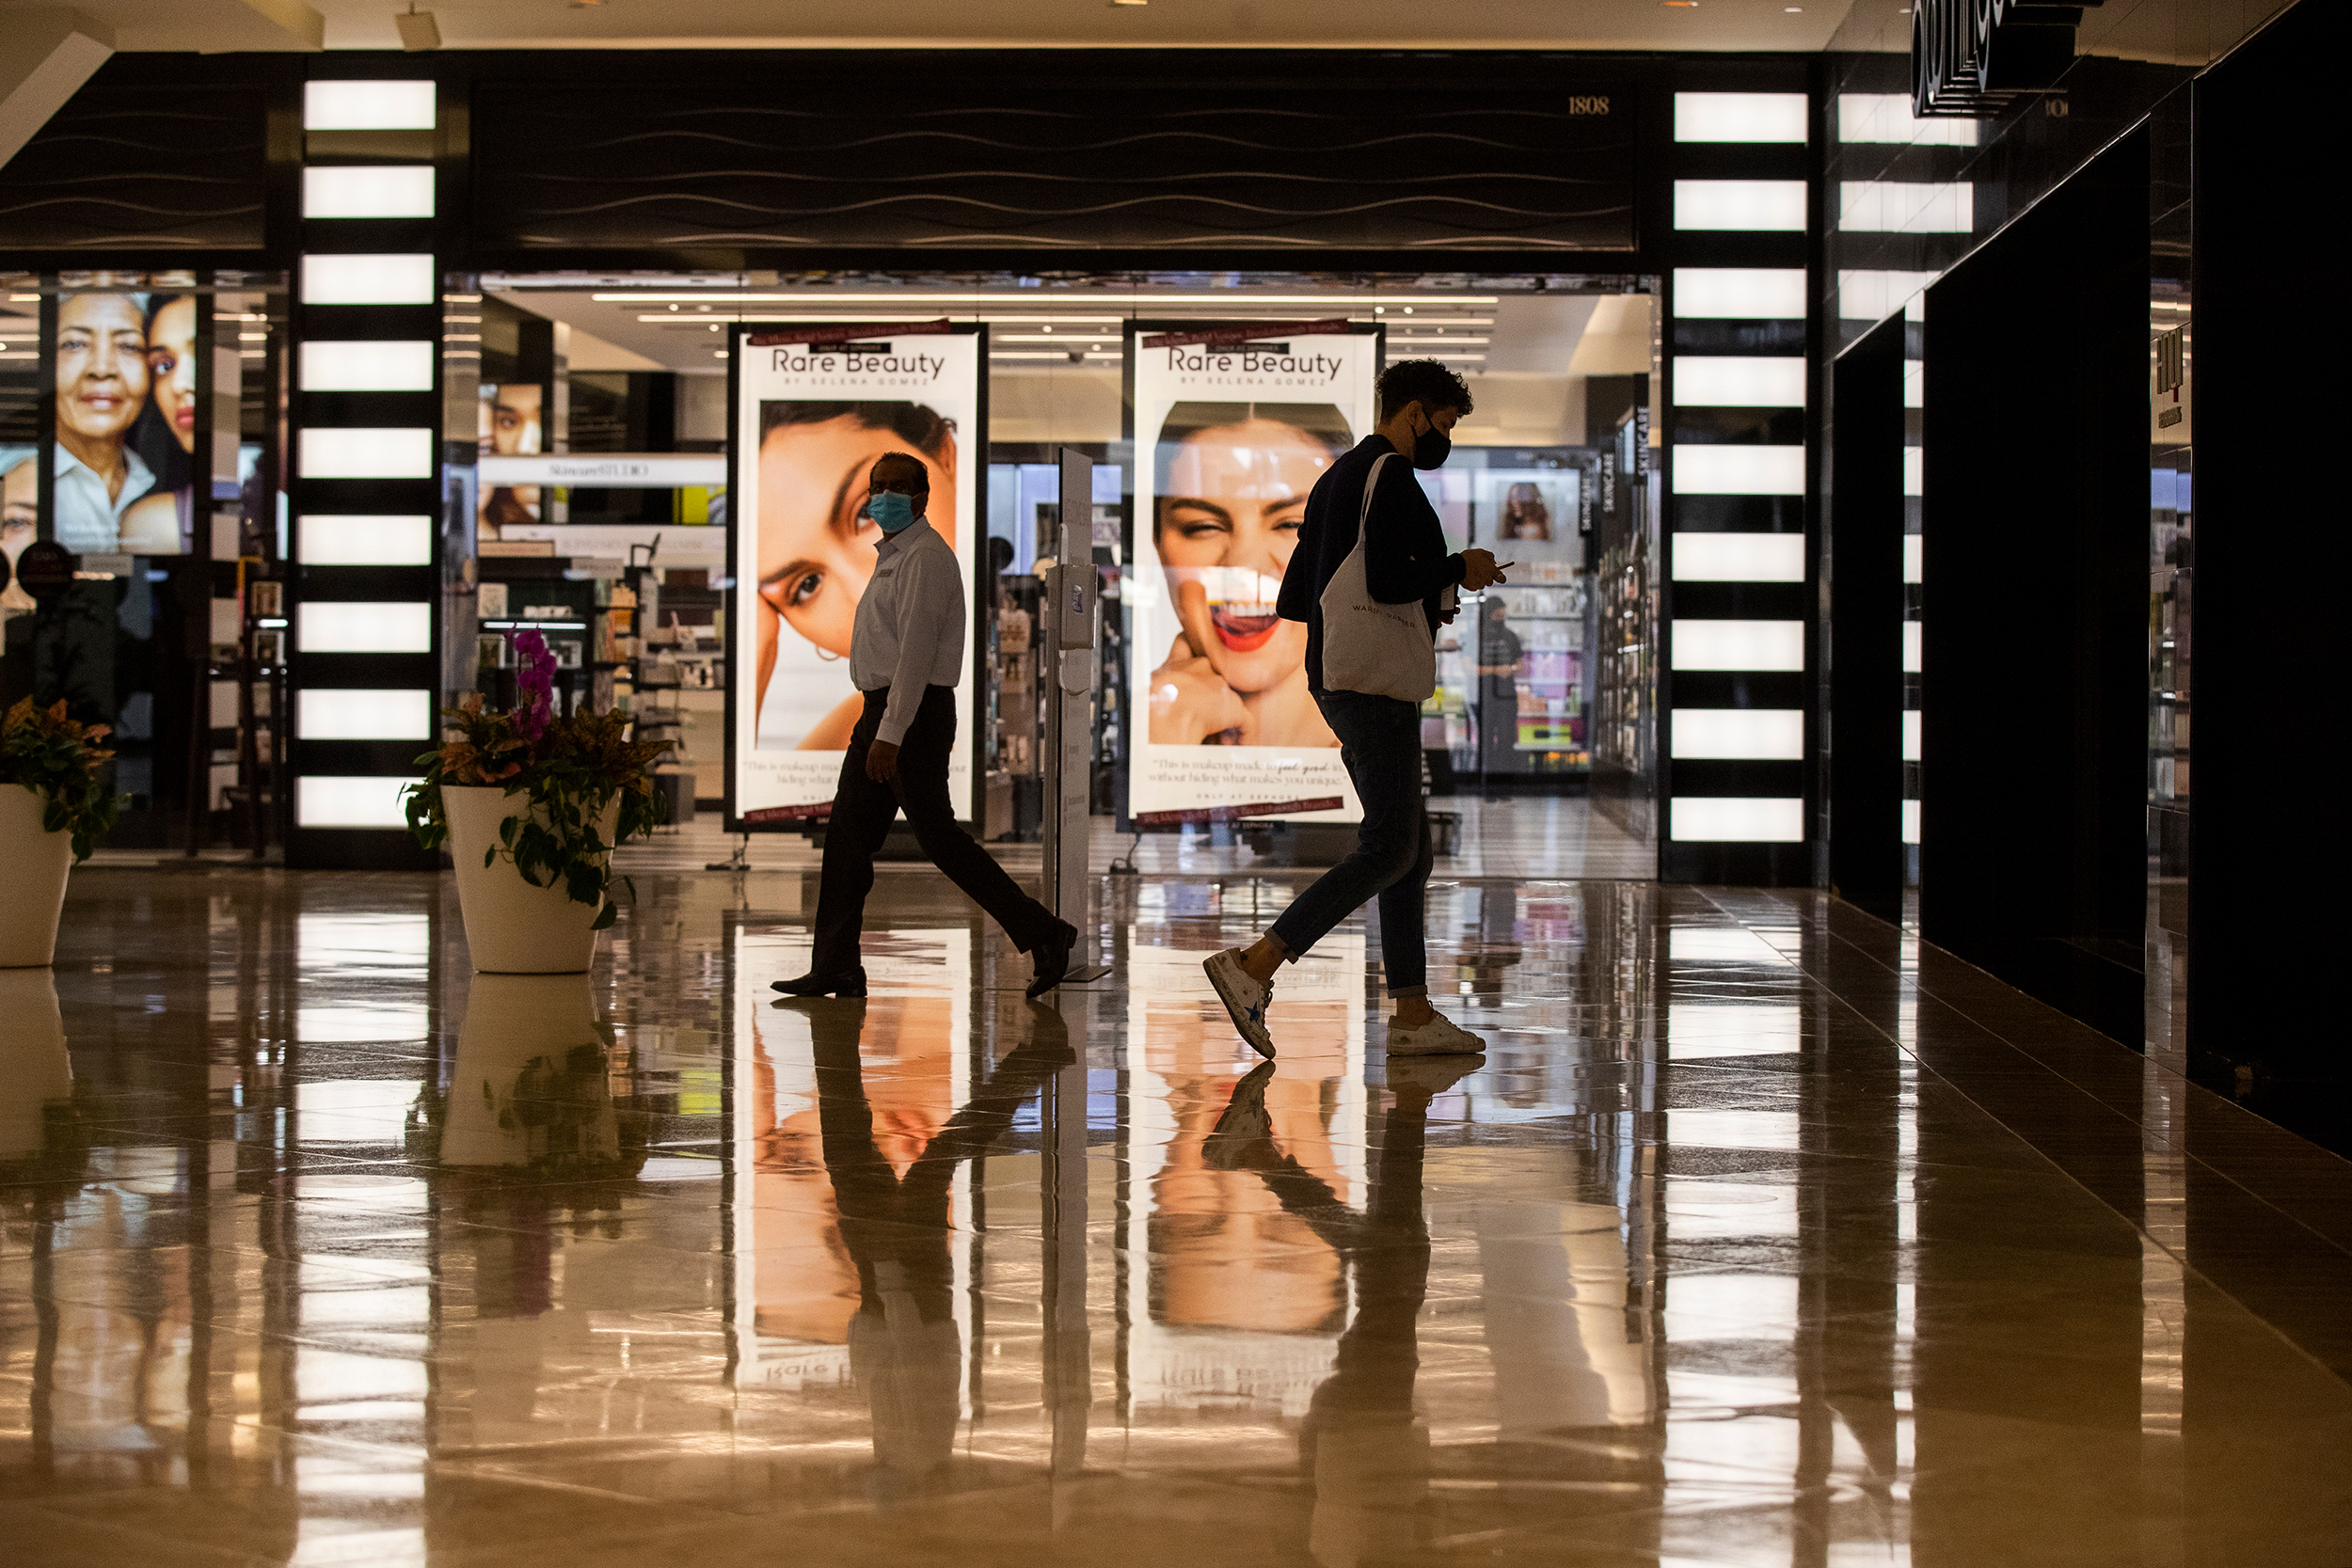 People visit South Coast Plaza in Costa Mesa, California, on September 28.